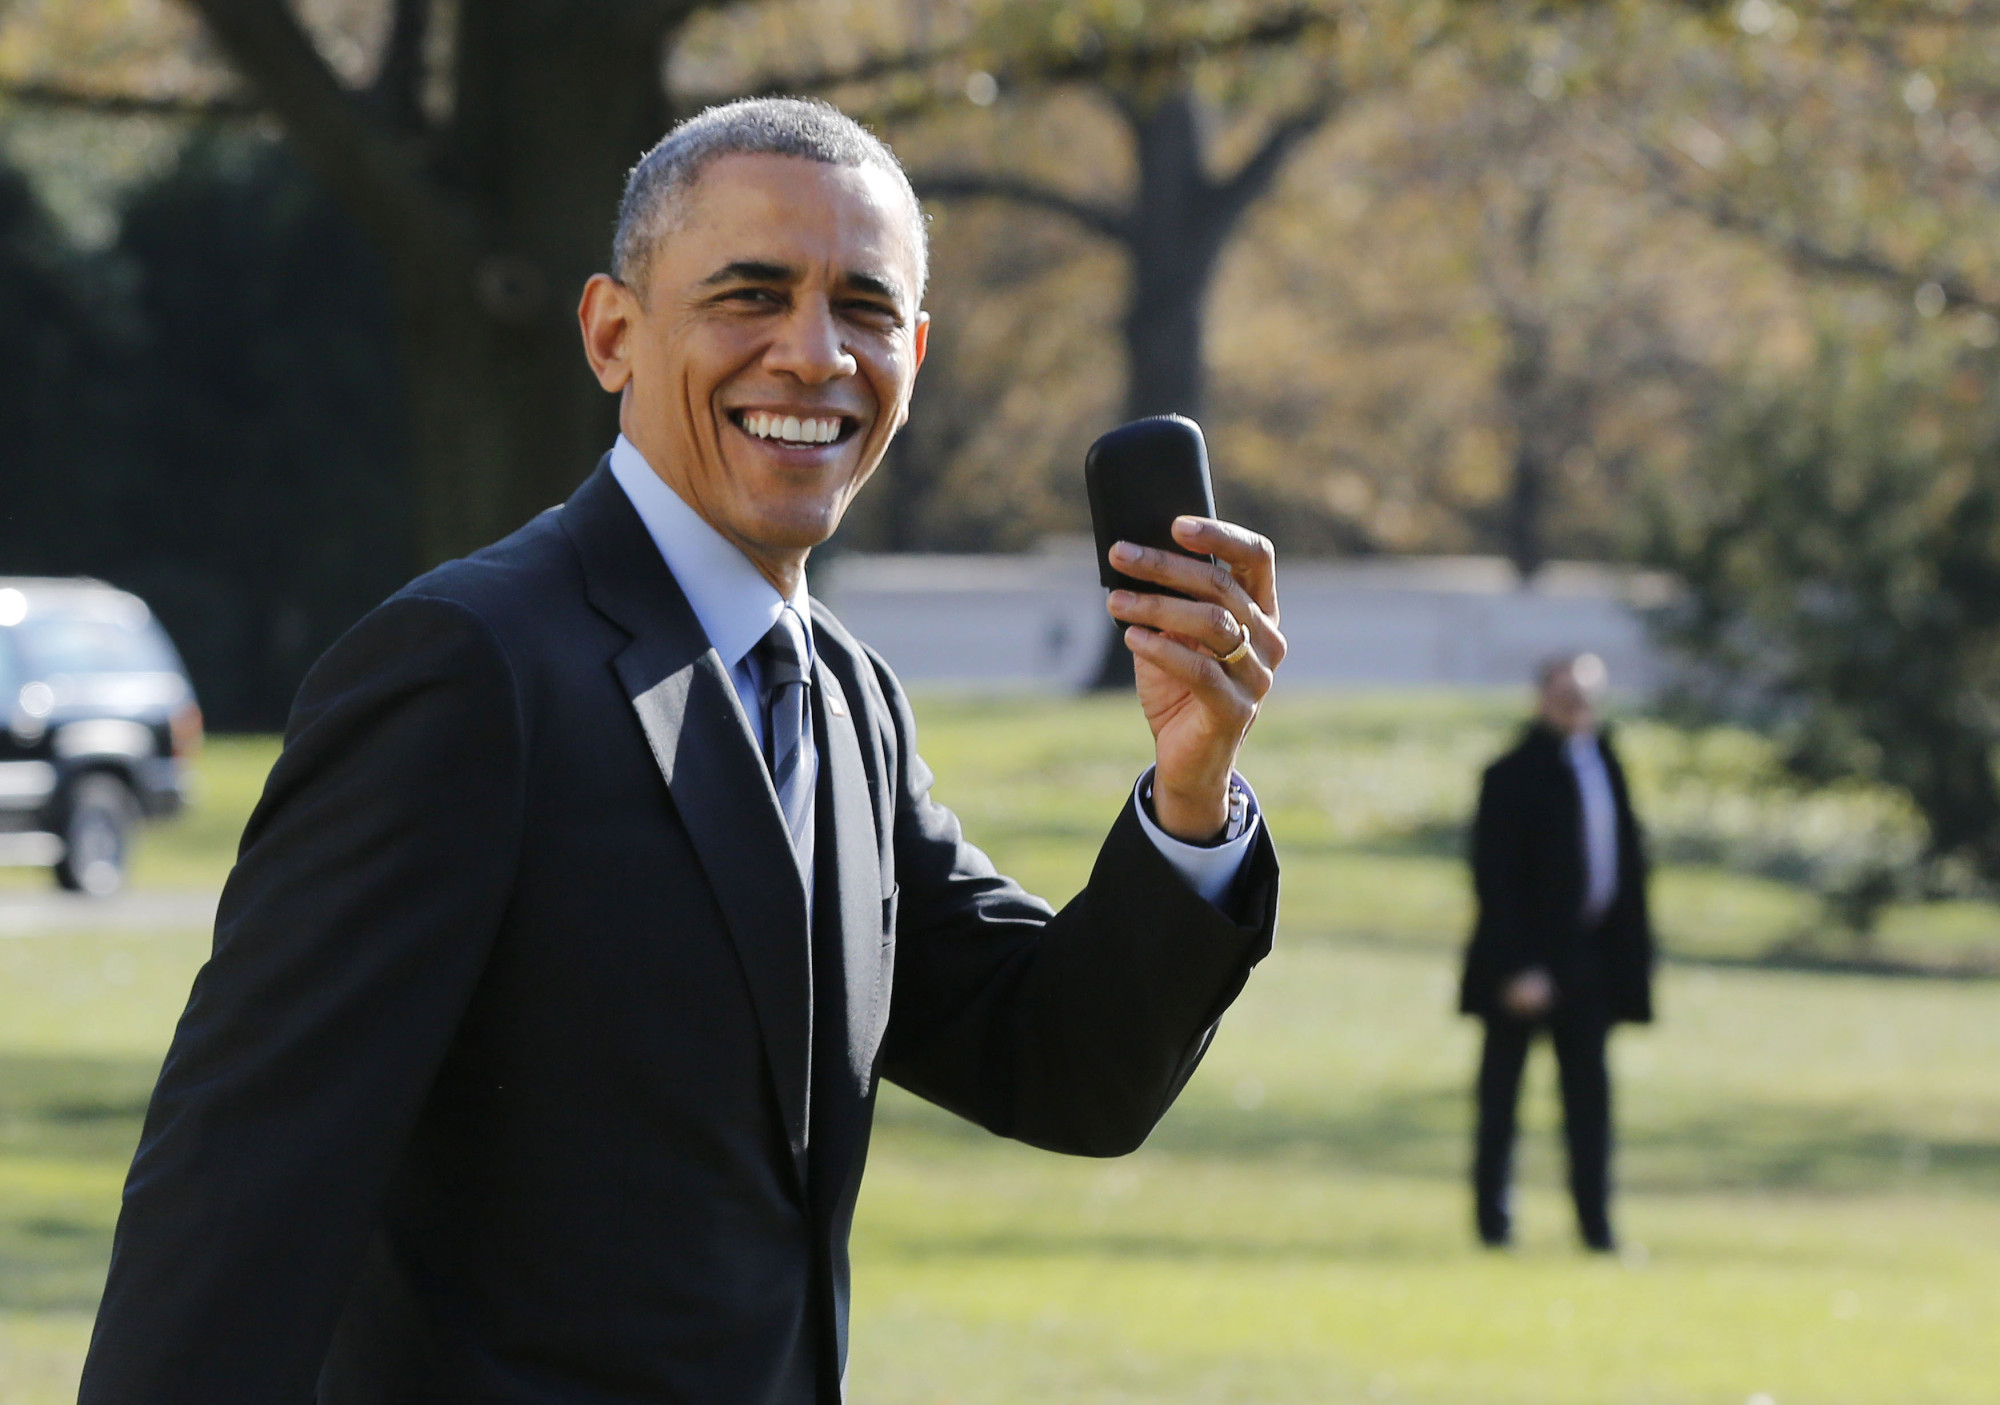 Obama and his BlackBerry